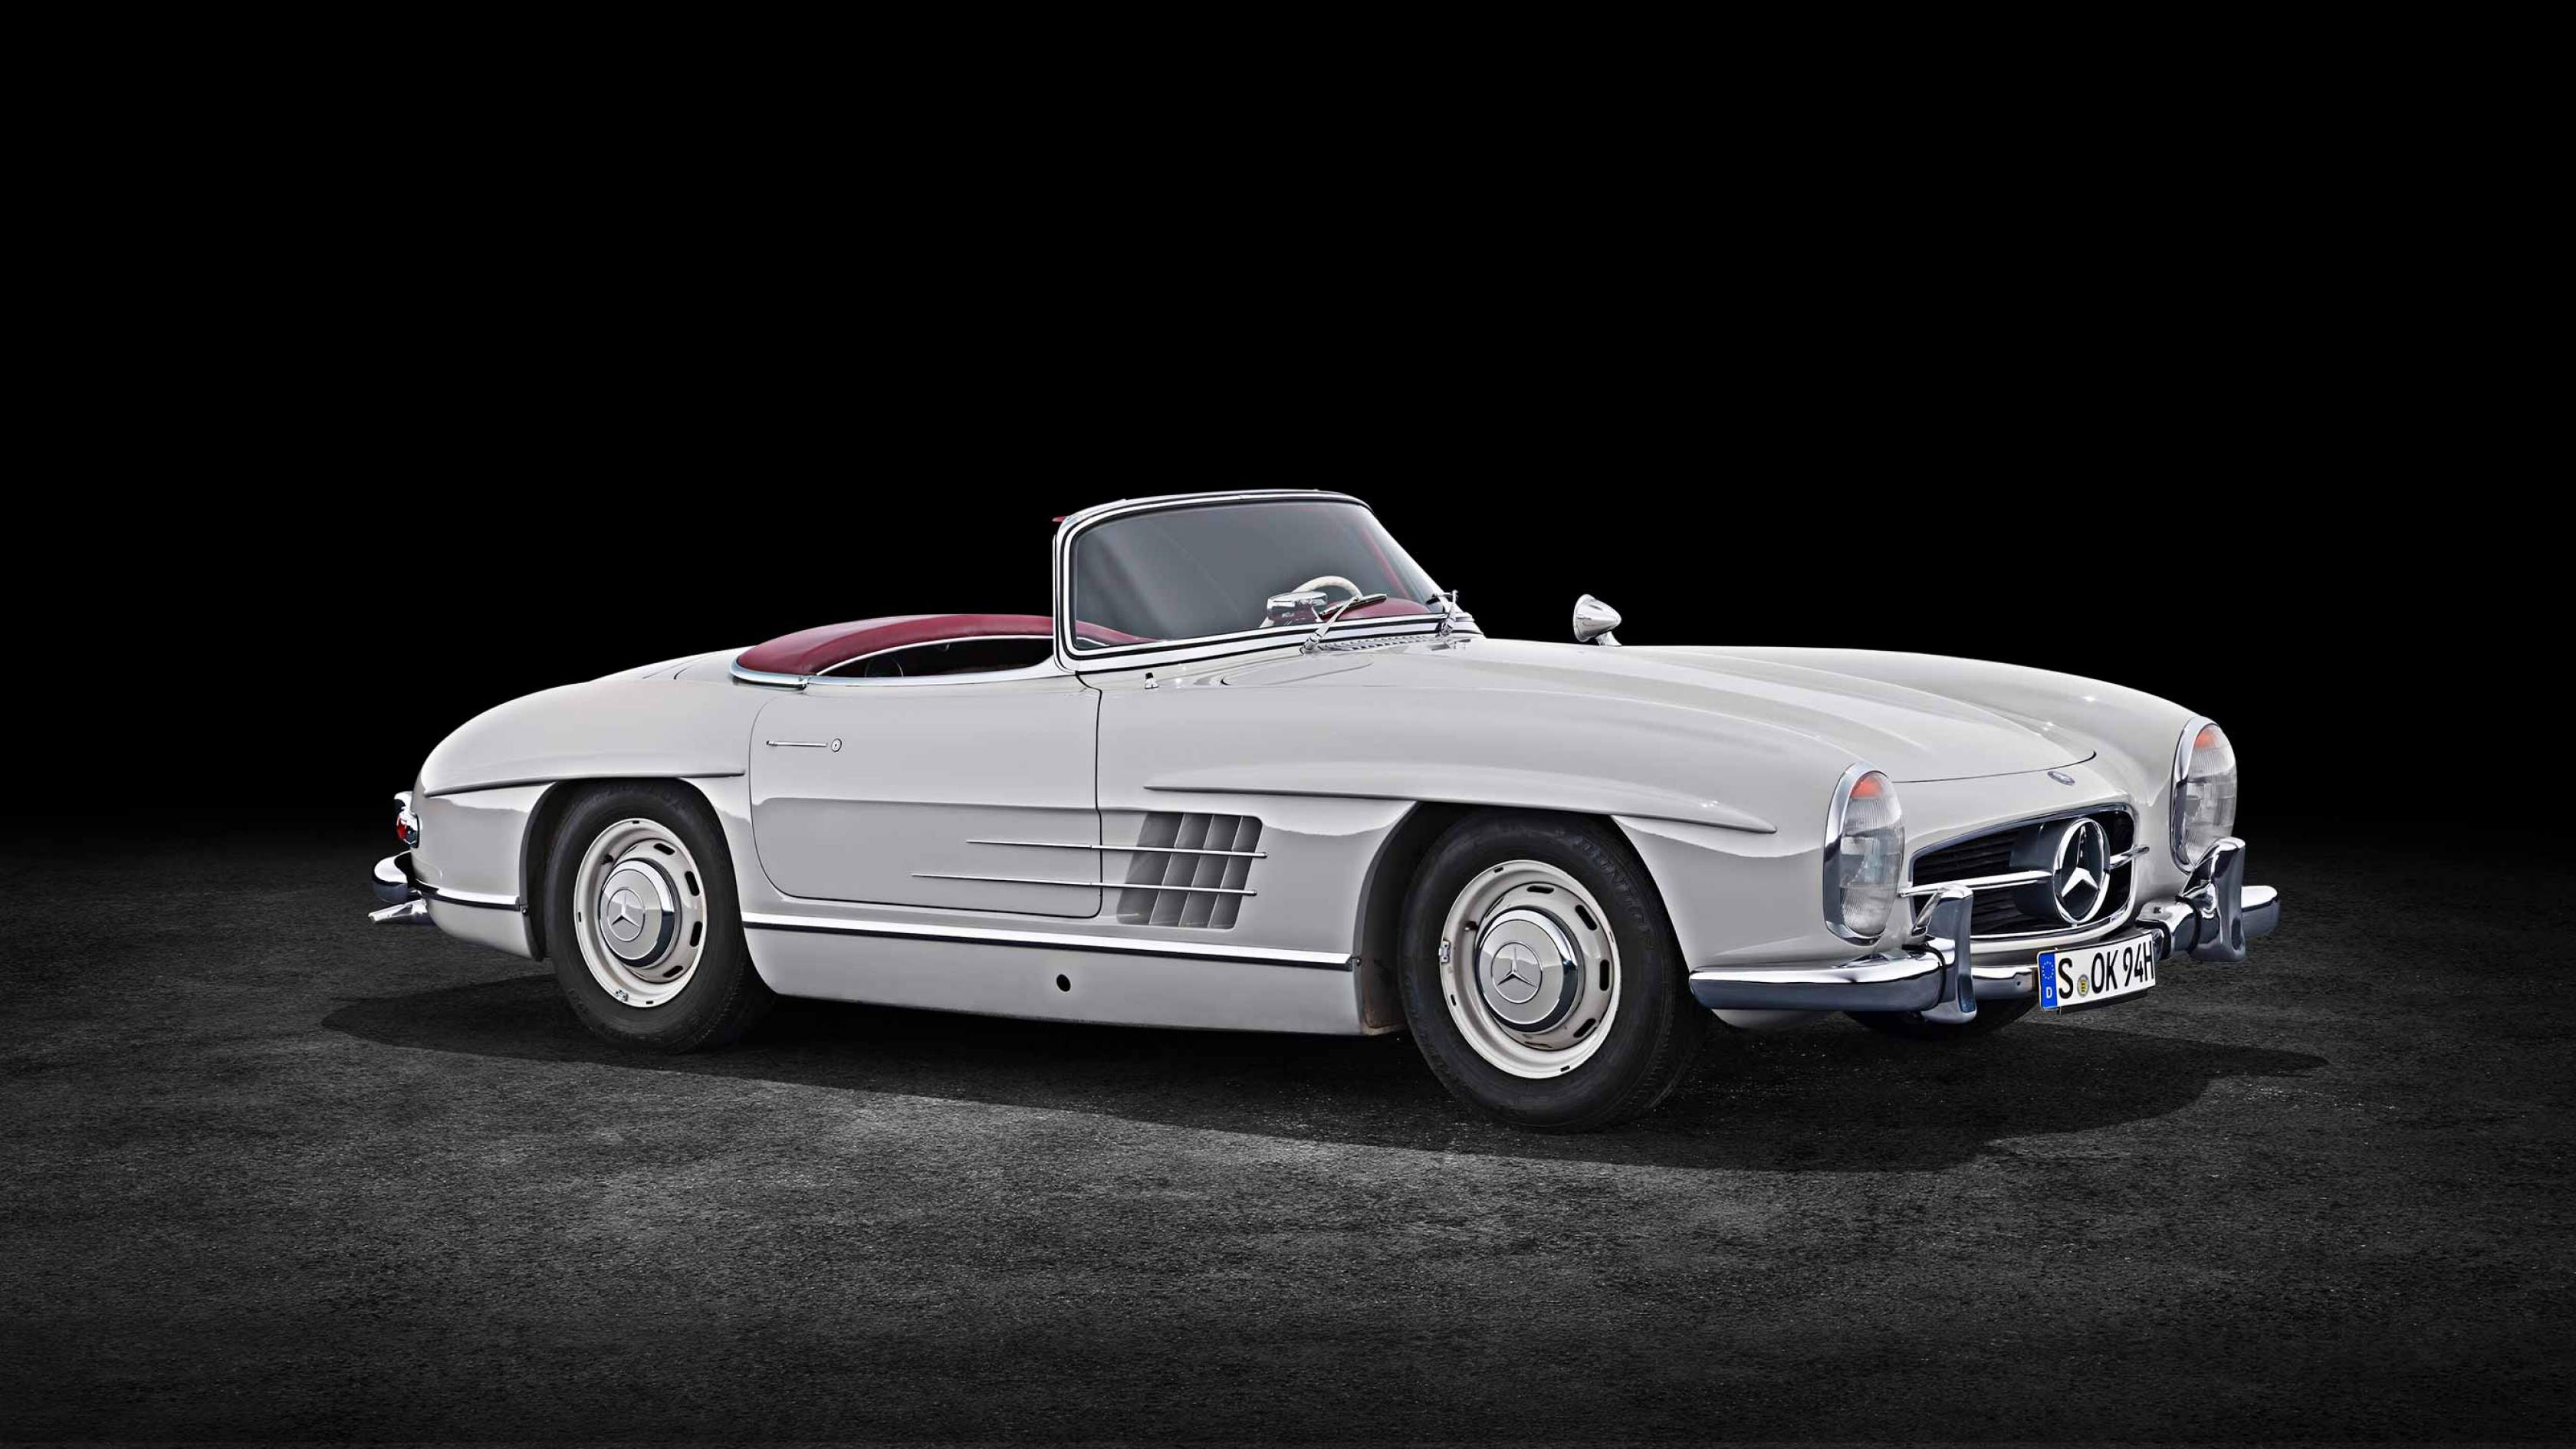 автомобиль Mercedes-Benz 300 SL 1957 г